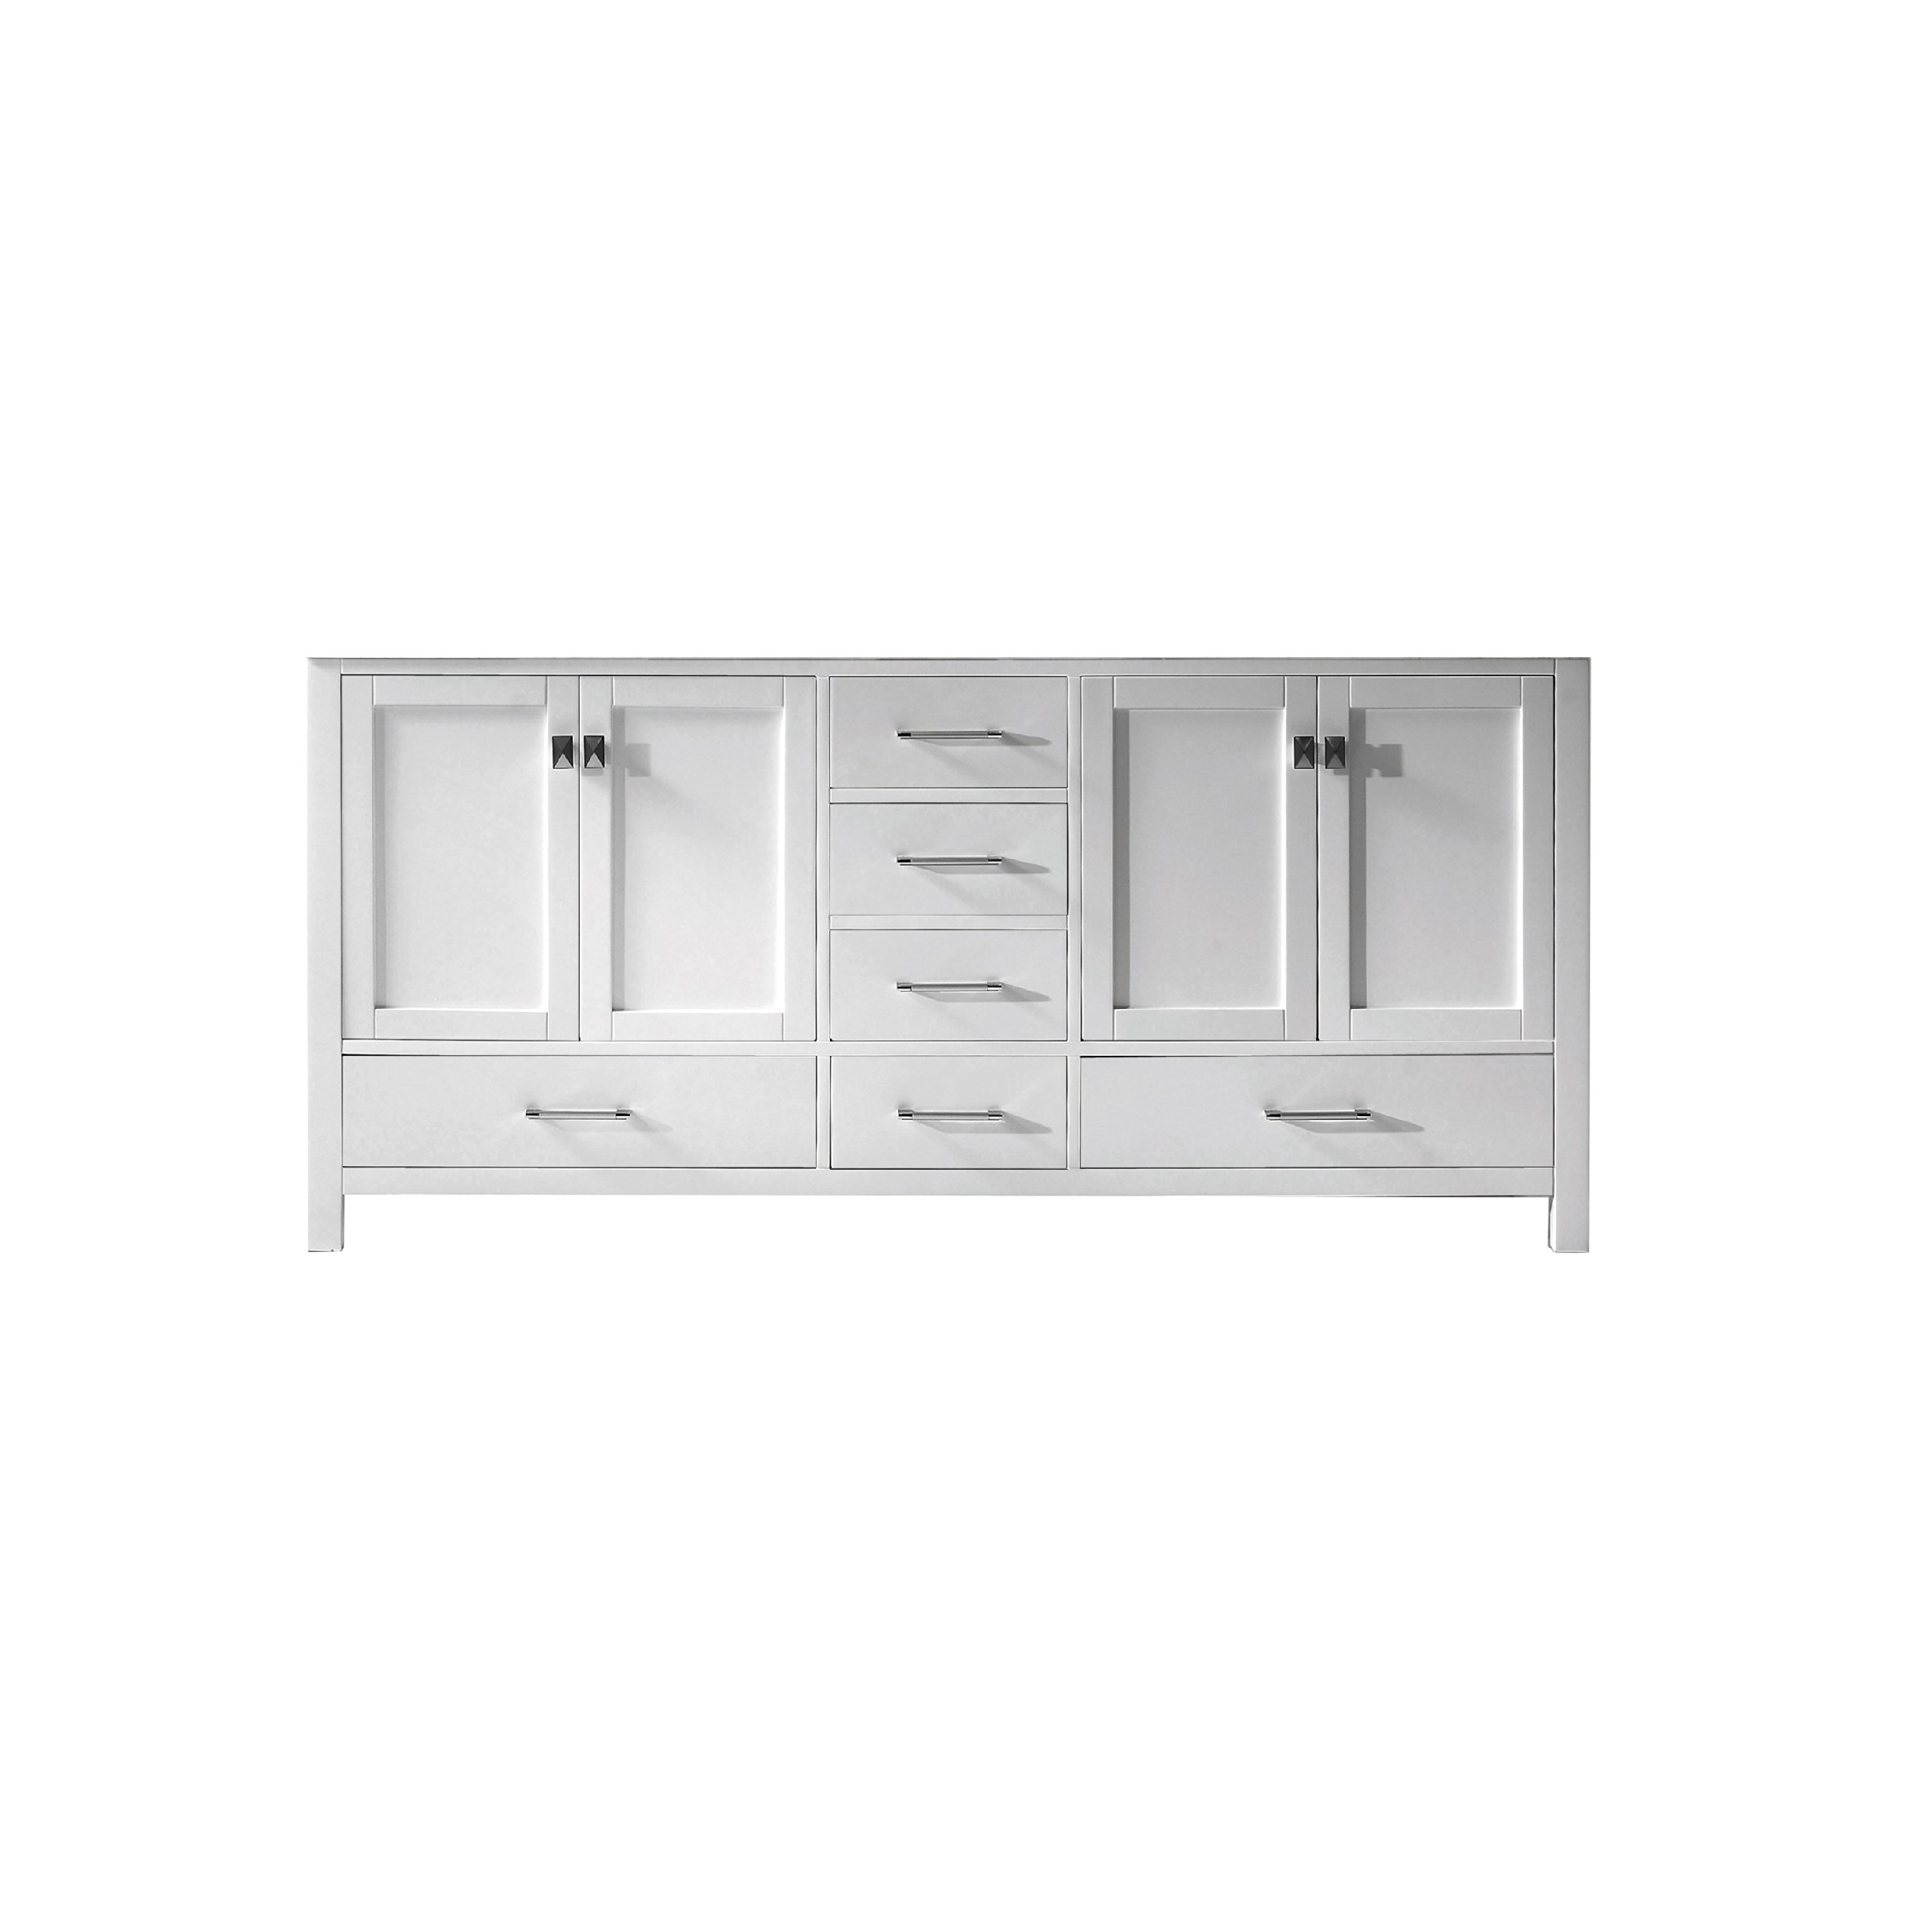 Virtu USA GD-50072-CAB-WH Caroline Avenue 72 inch Double Bathroom Vanity Cabinet In White